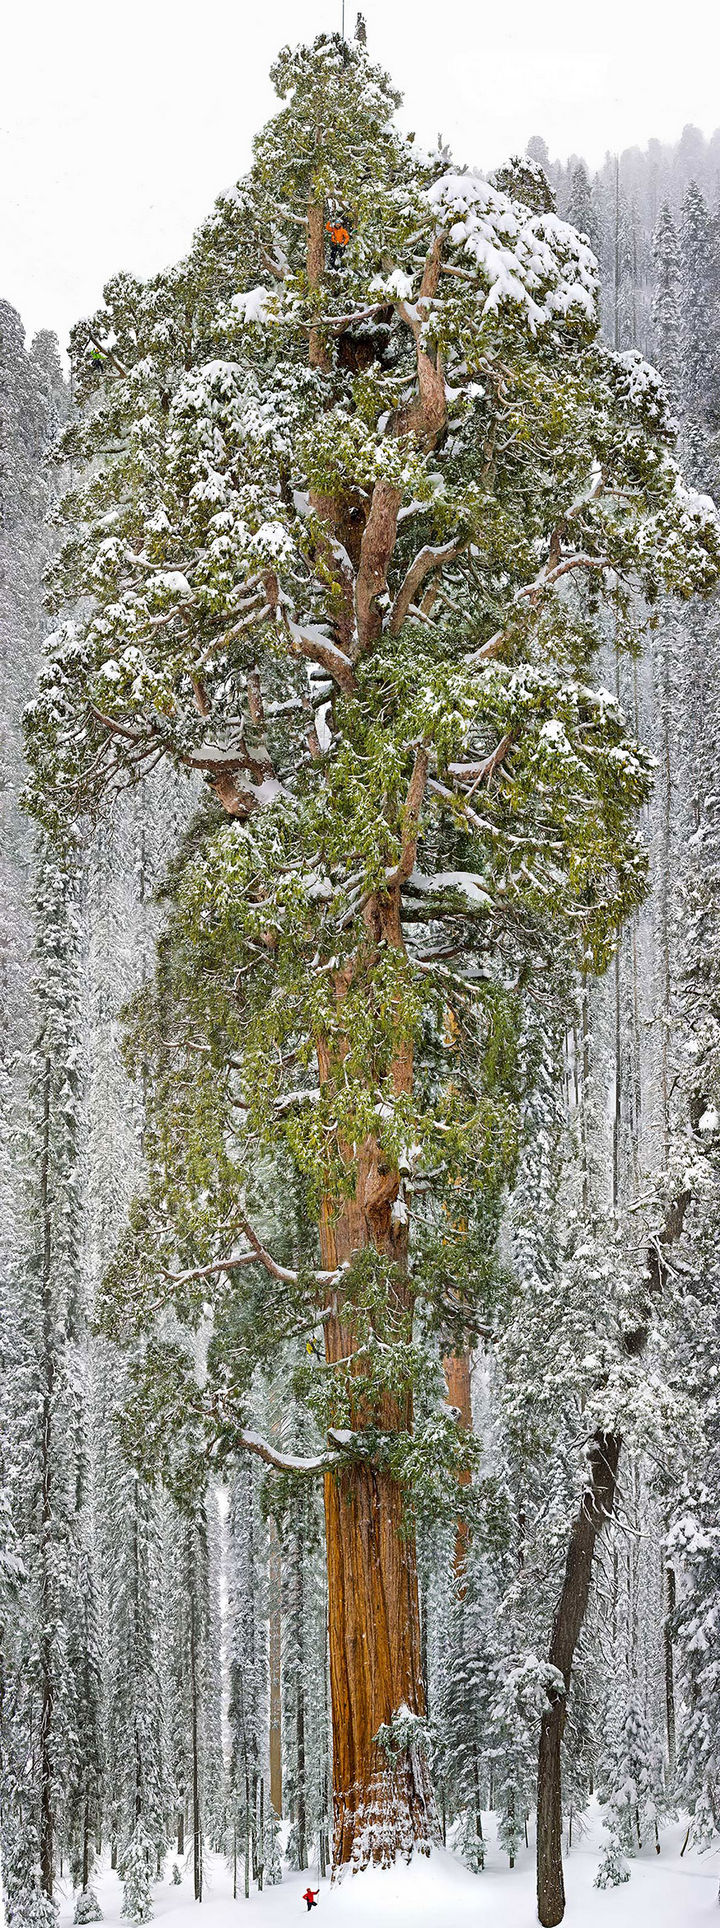 17 Pictures of the Prettiest Trees on Earth - The President, Third-Largest Giant Sequoia Tree In The World, California.